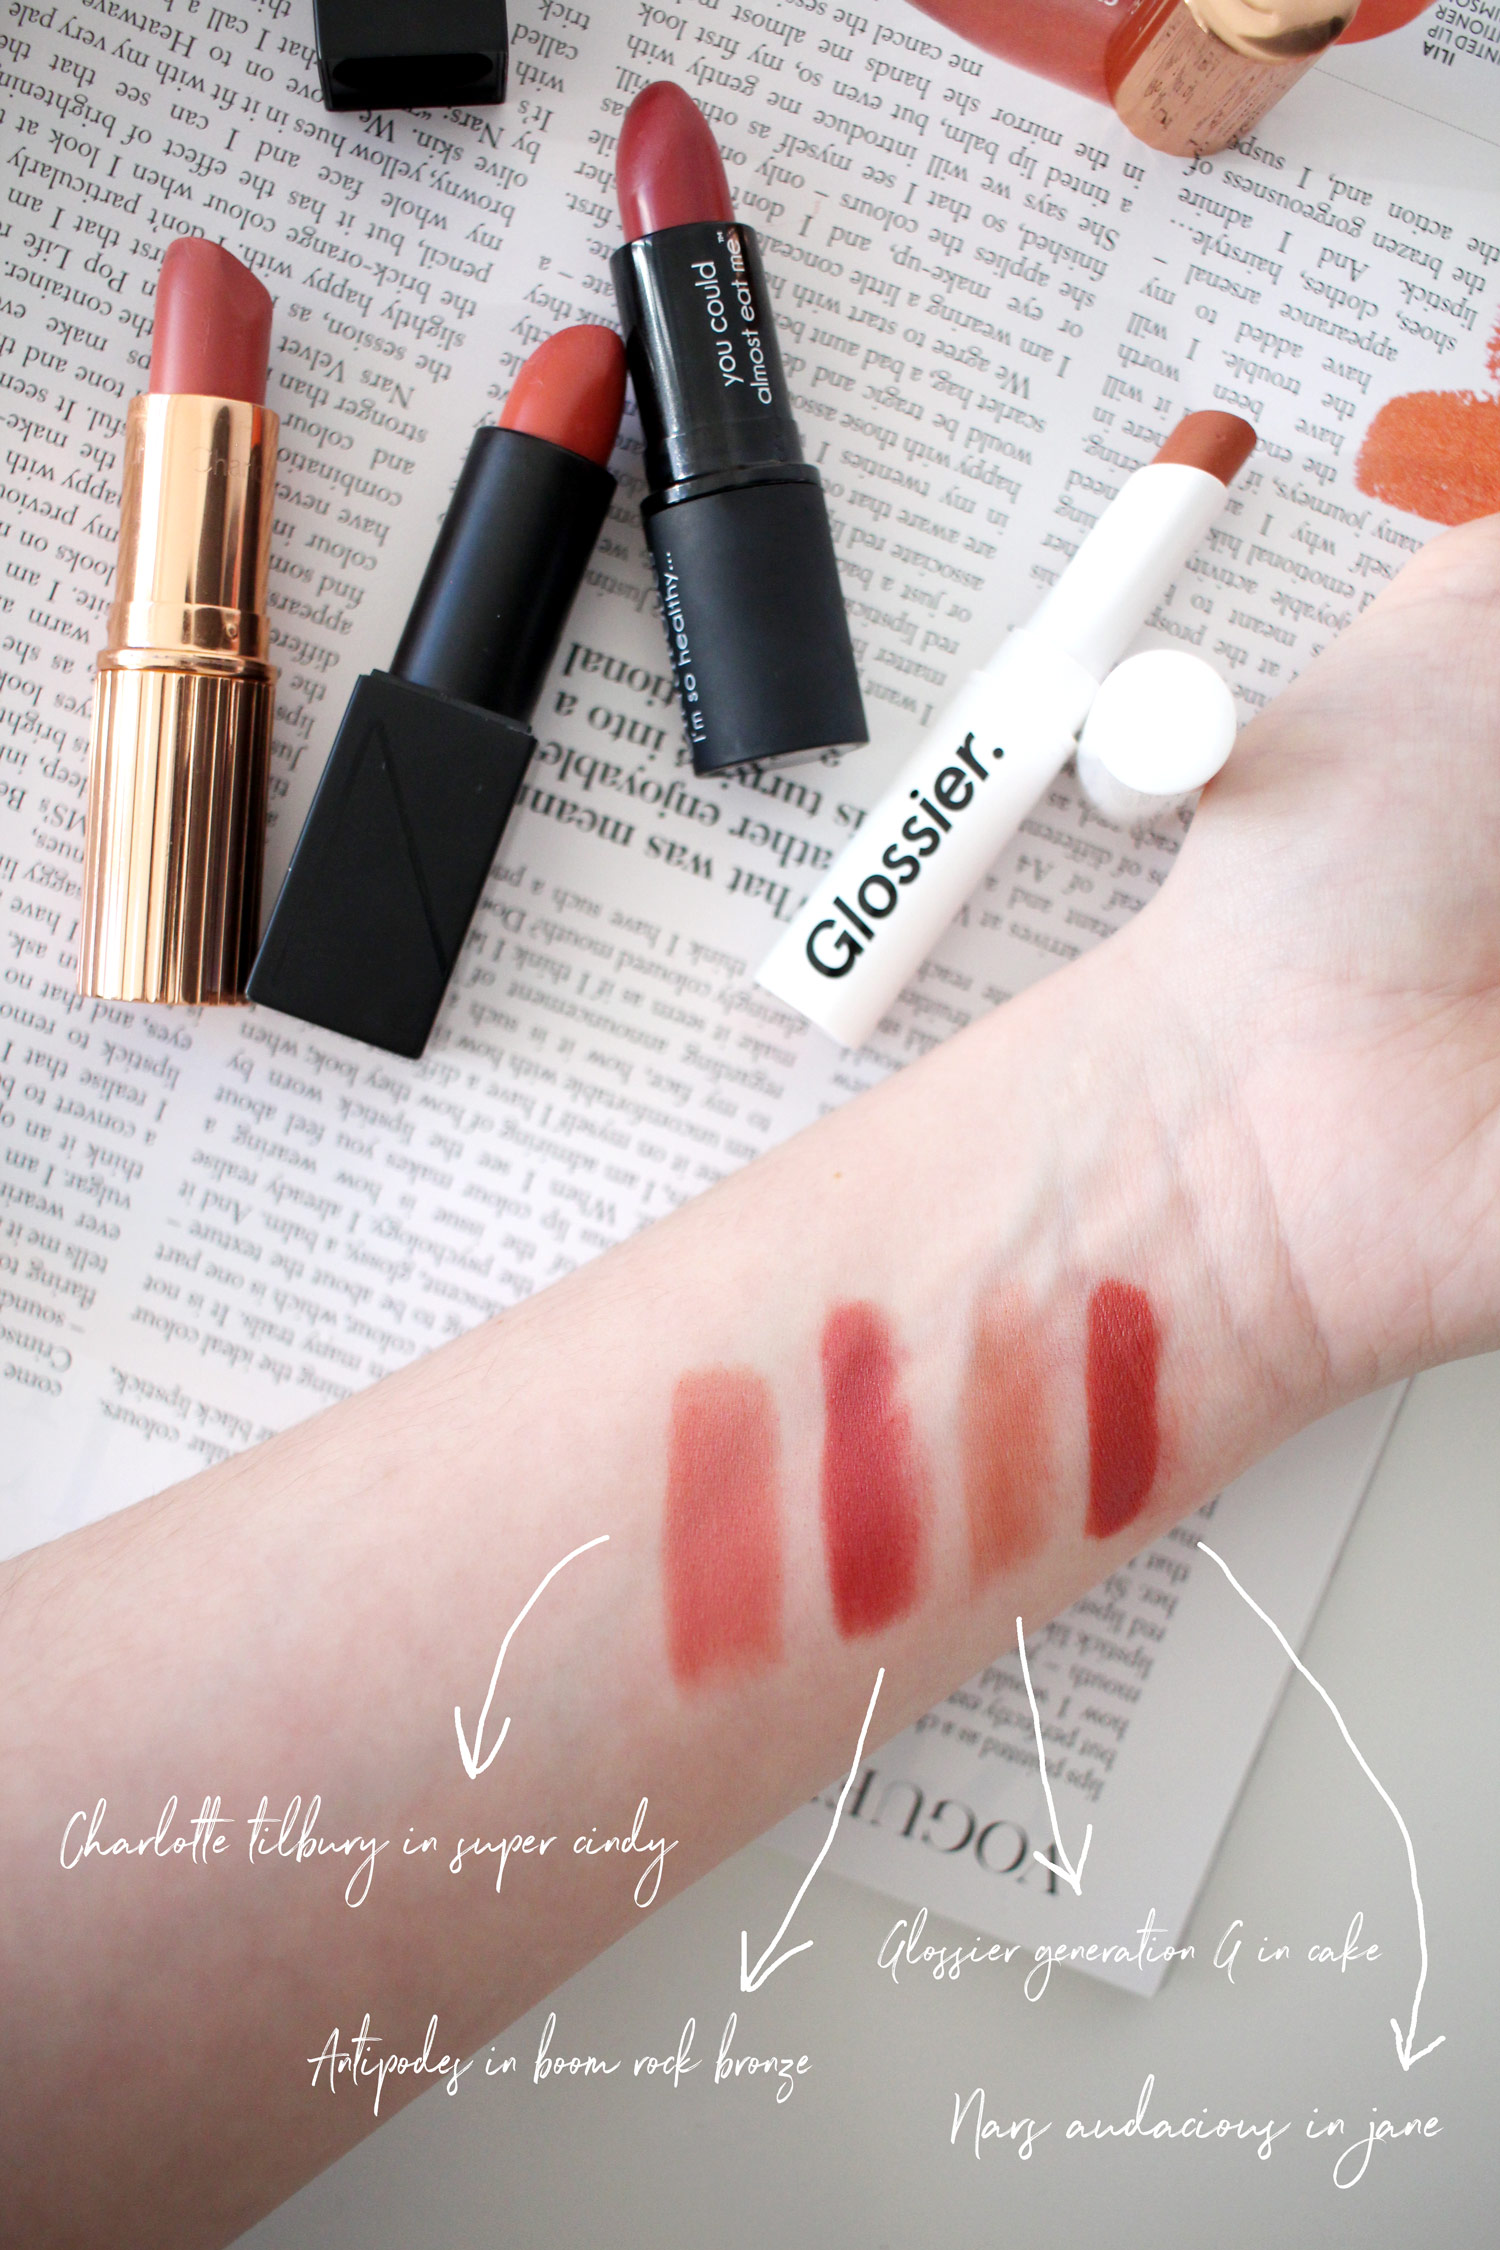 four-peach-pink-rose-lipsticks-to-try-now-5